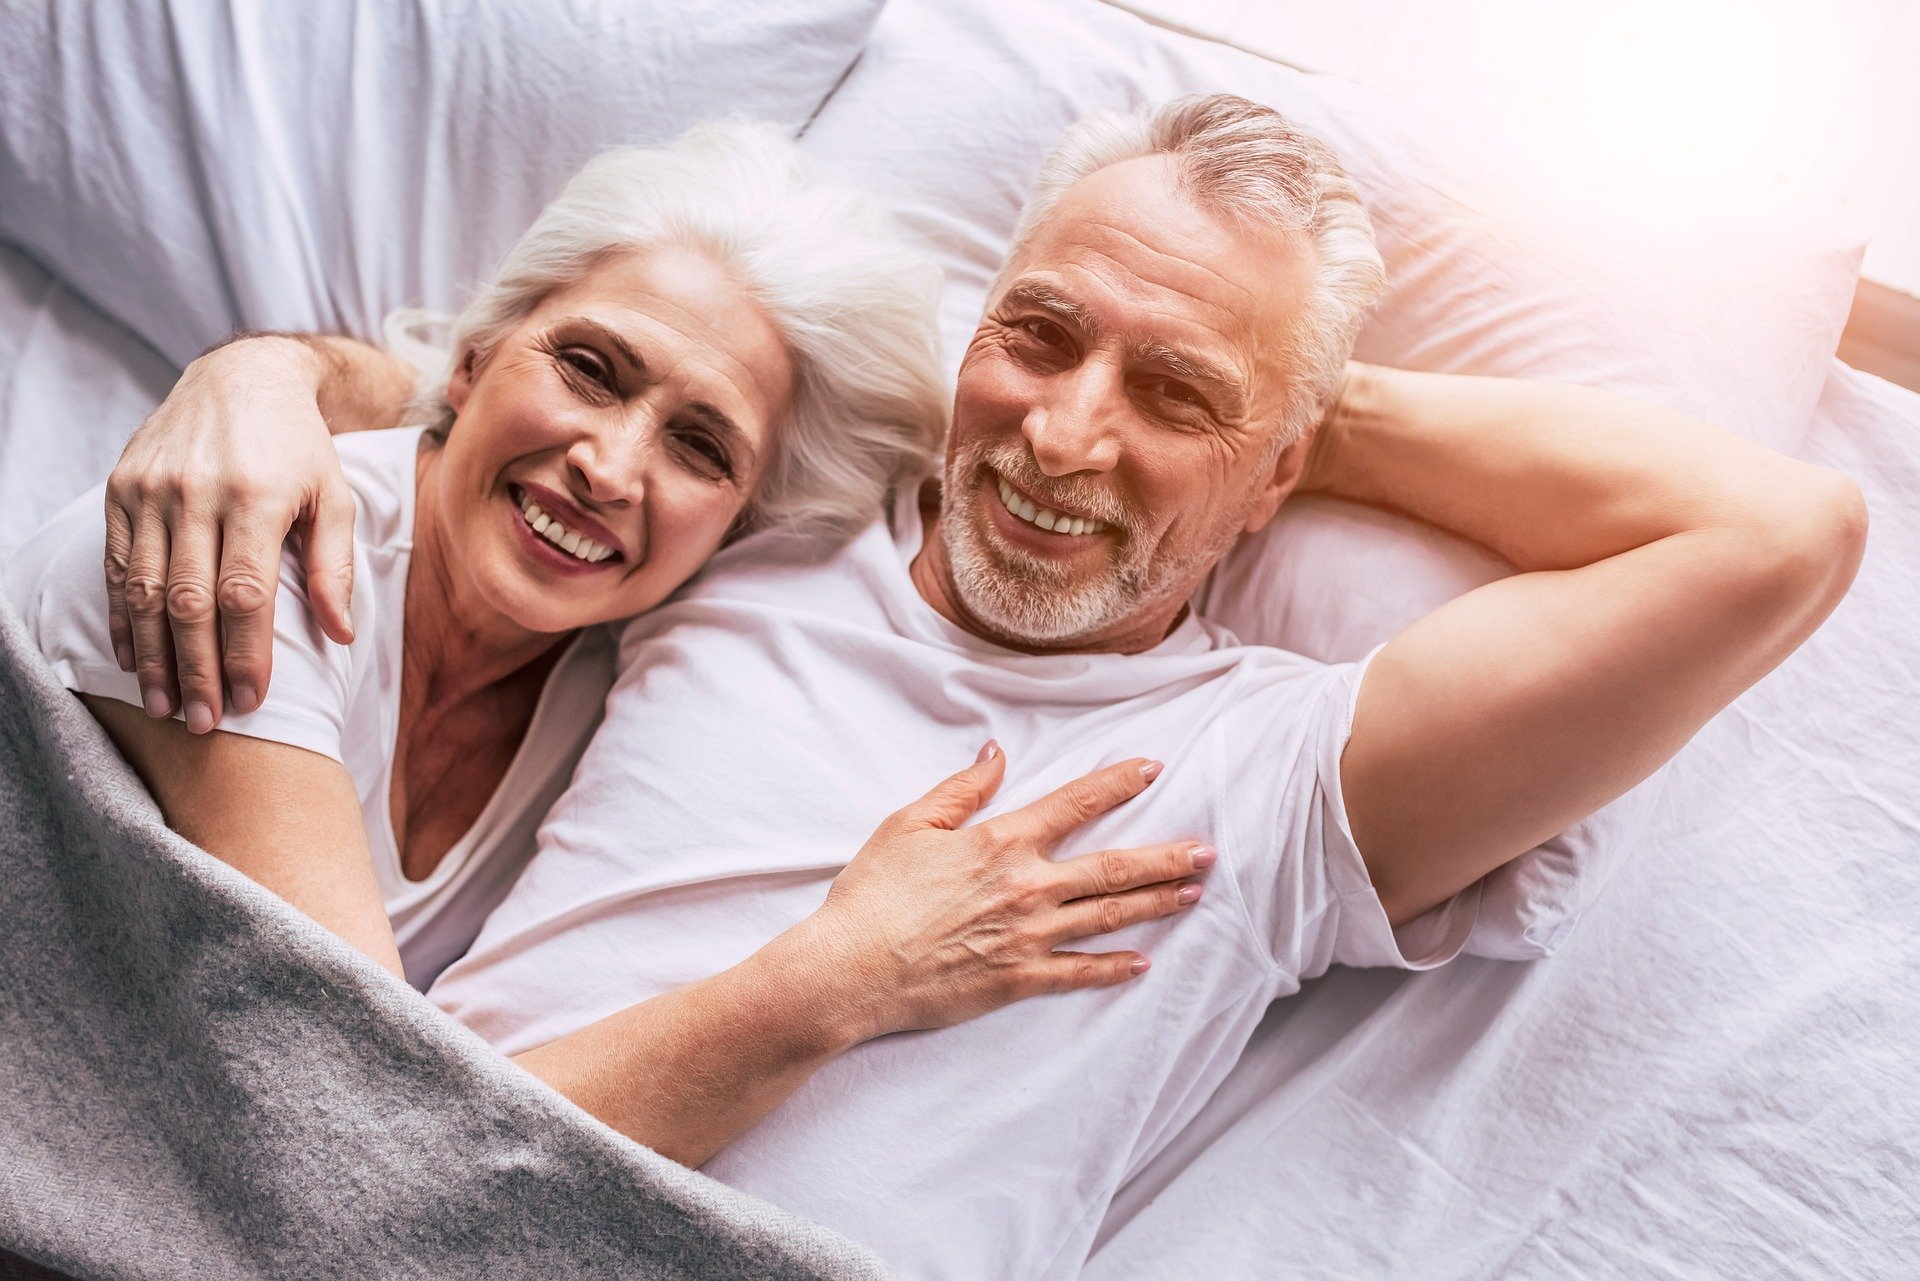 healthy aging - get good quality sleep